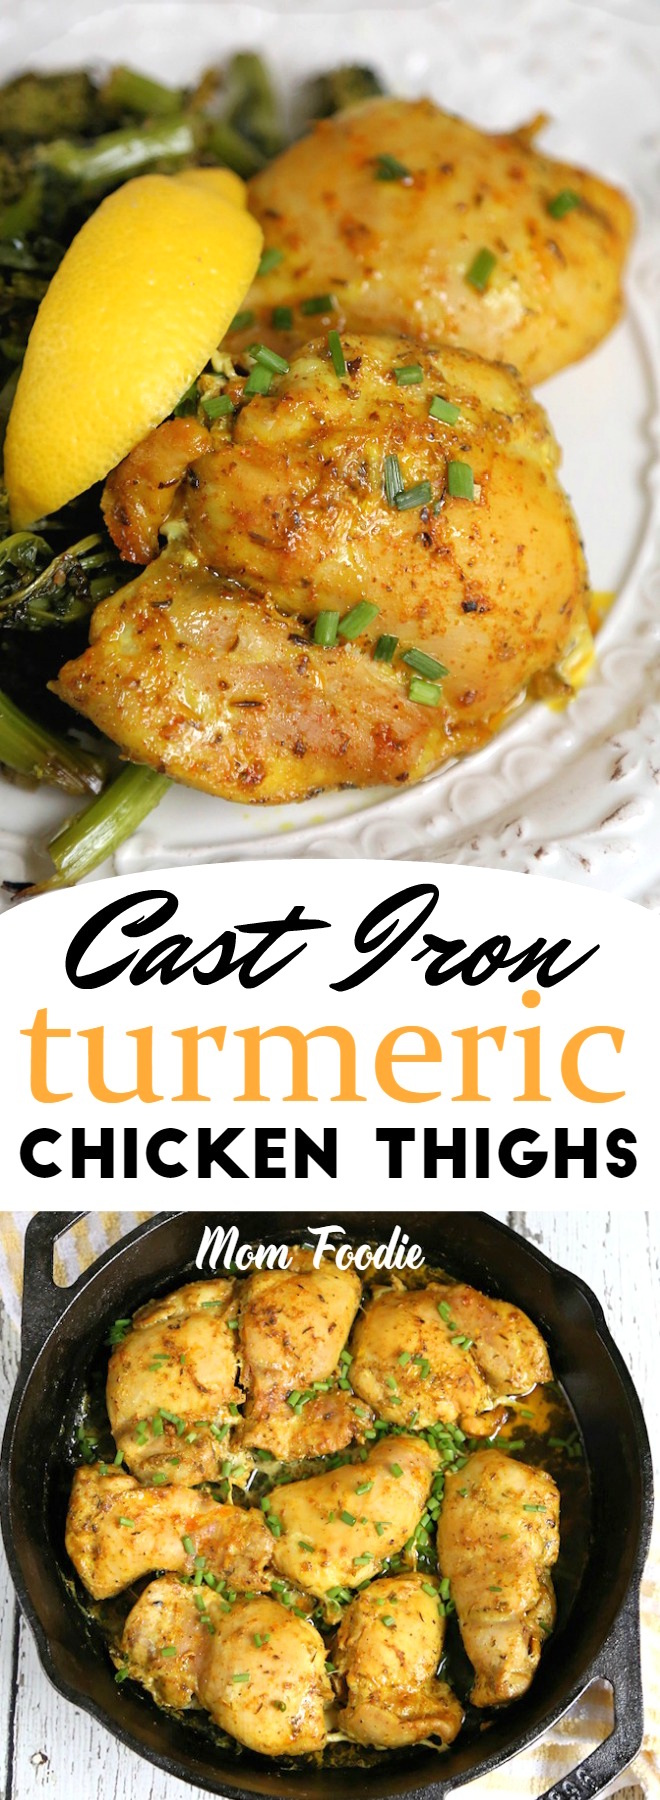 Cast Iron Turmeric Chicken Thighs Recipe - Keto Diet Recipe Low carb #keto #lowcarb #turmeric #castiron